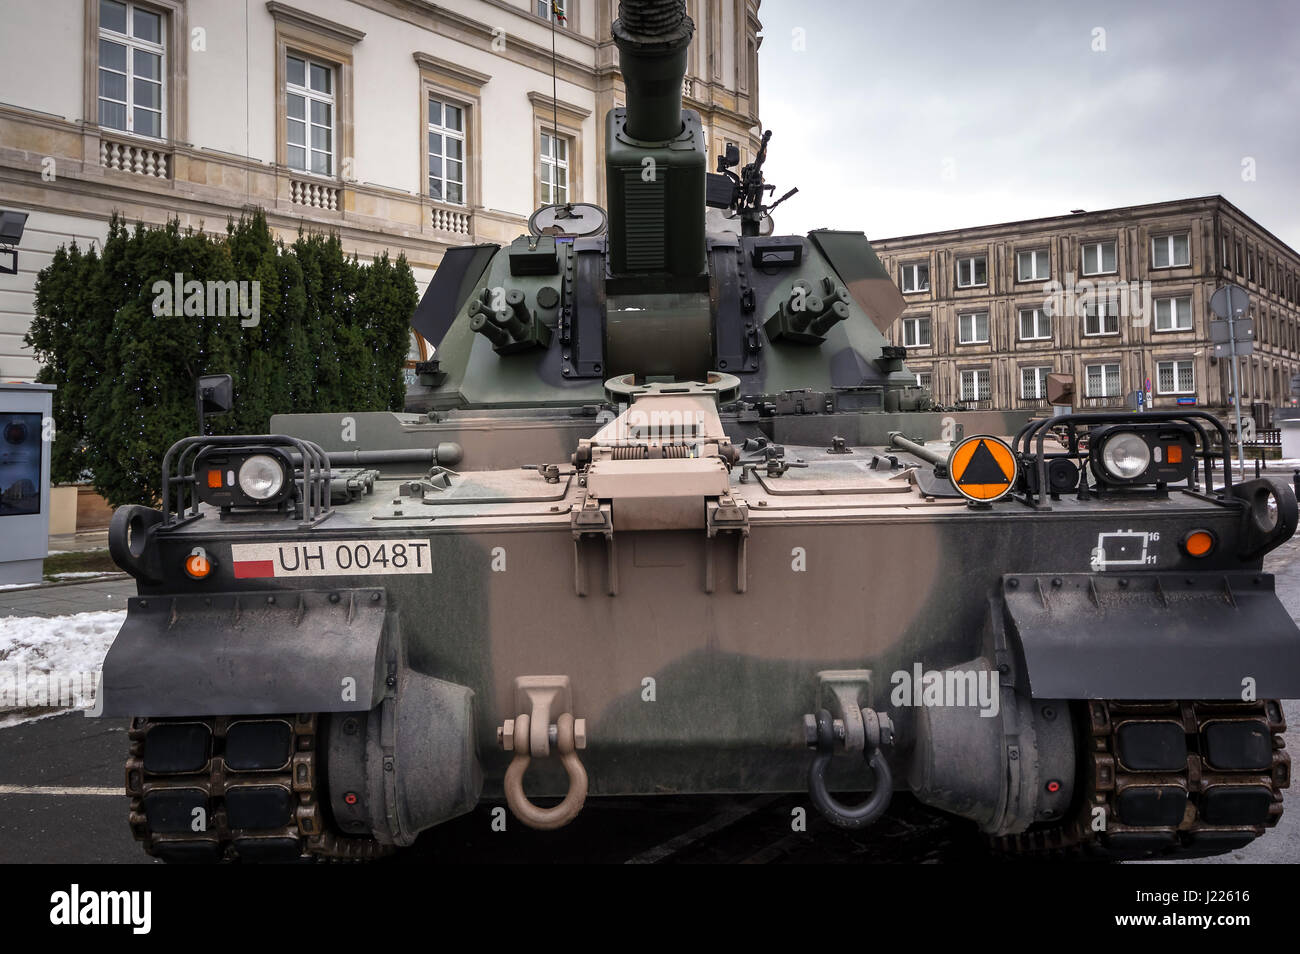 Modern Polish self-propelled 155 mm howitzer used by the Armed Forces of the Republic of Poland - Warsaw, Poland. - Stock Image